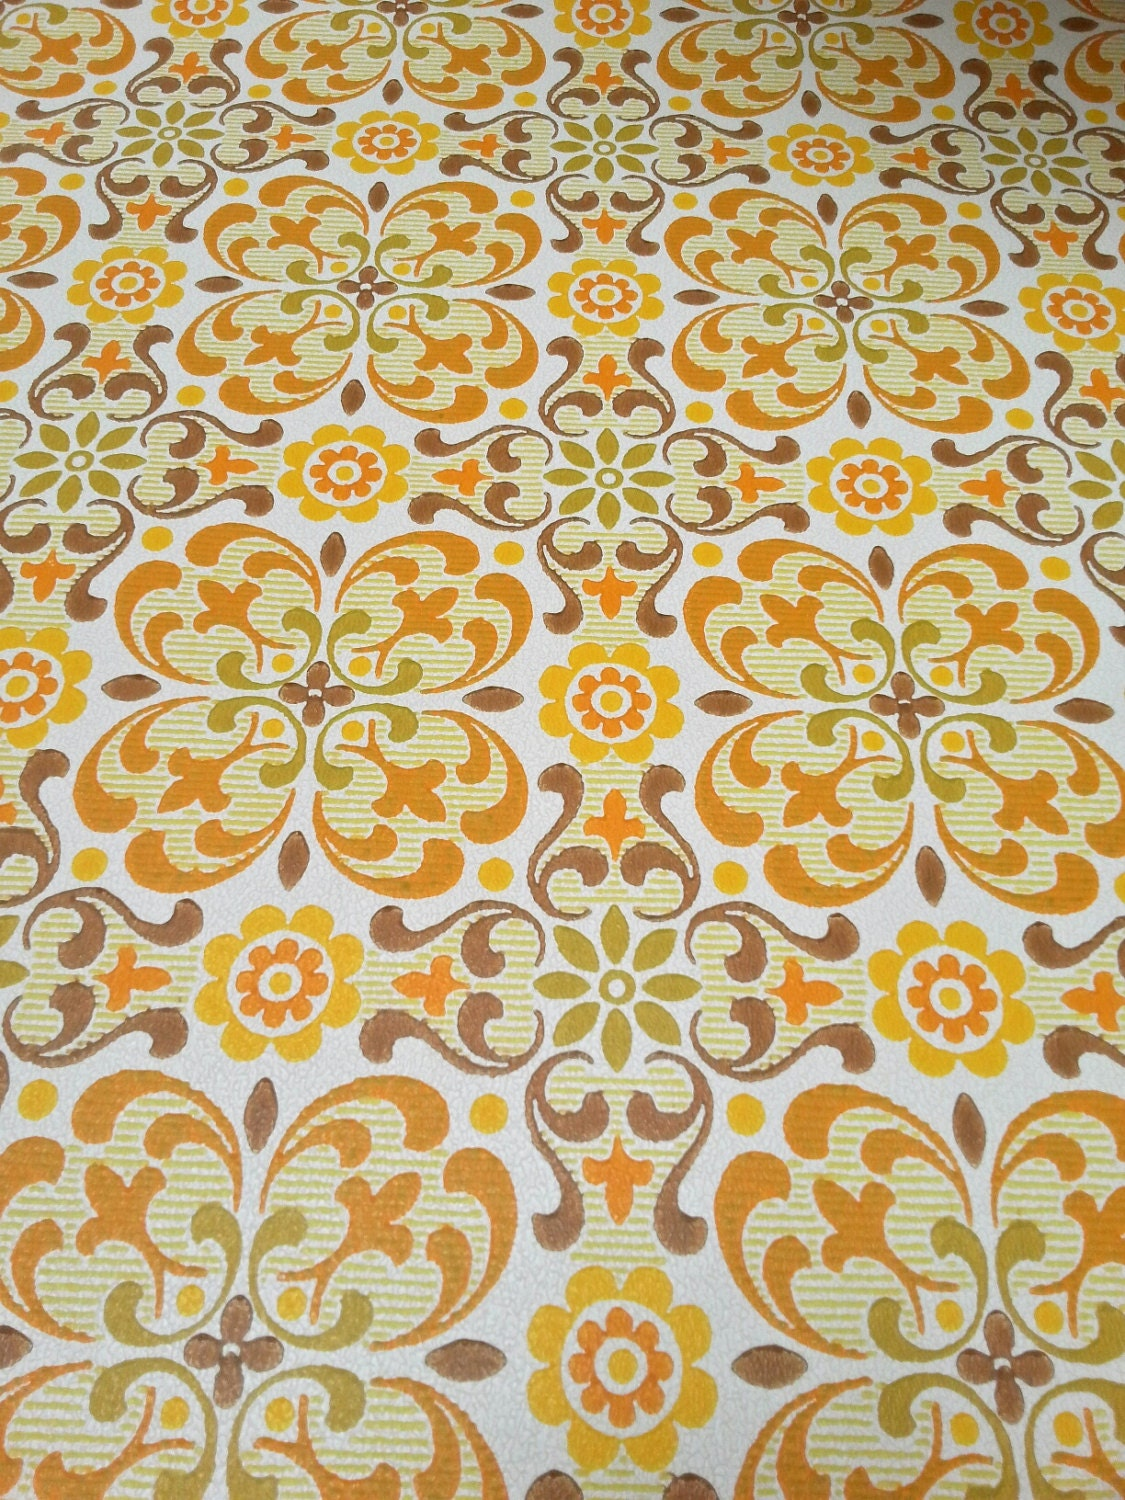 1970s vintage wallpaper retro - photo #18